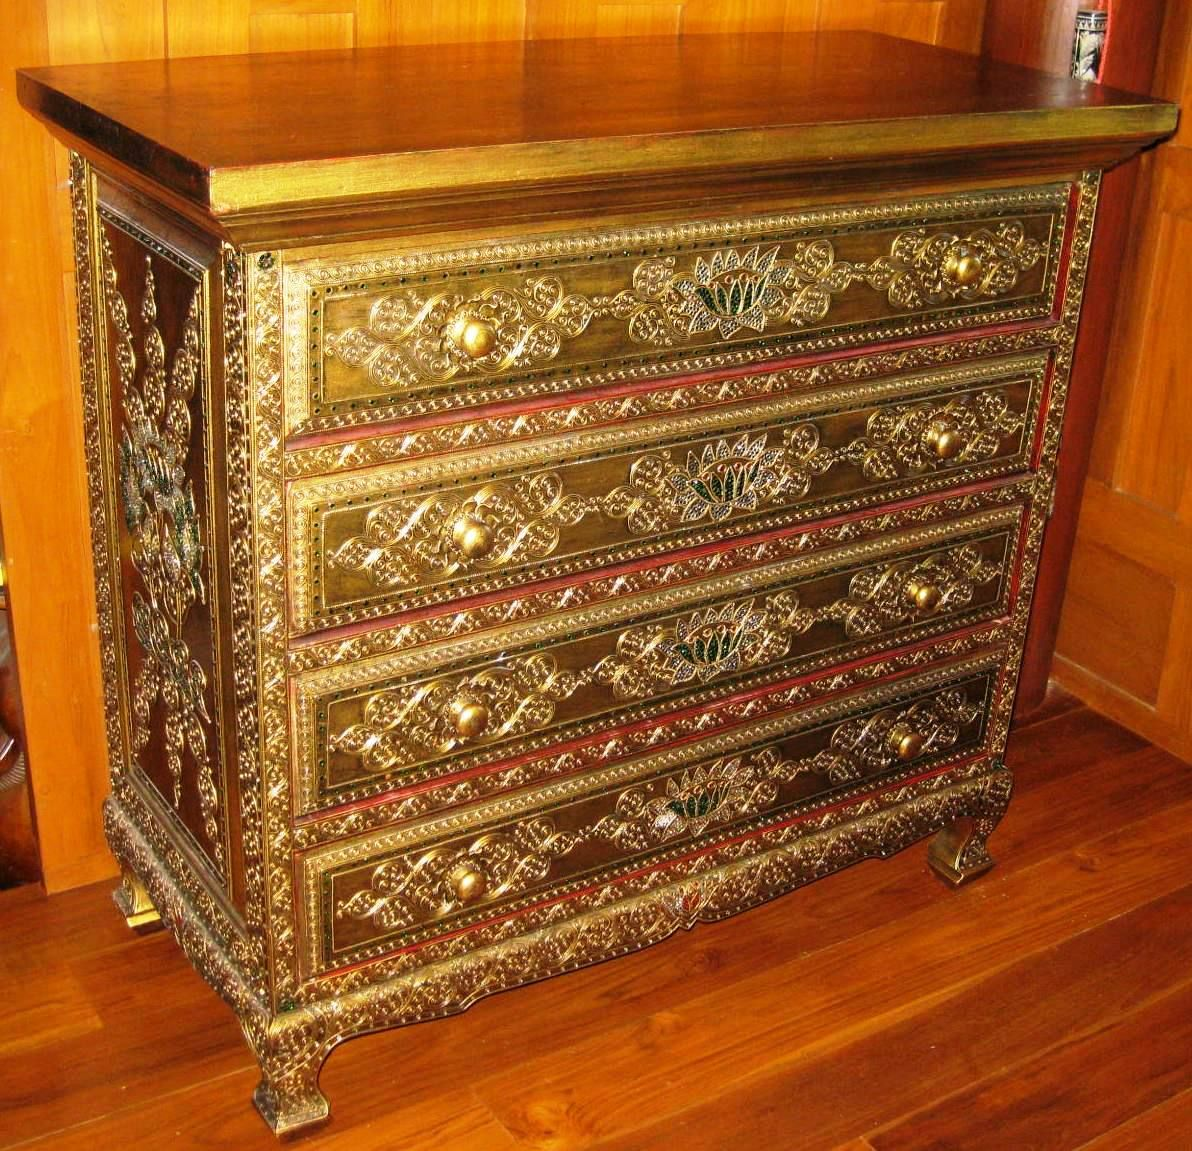 Asian antique furniture - Asian Antique Furniture Furniture Pinterest  Antique - Asian Antique Furniture Antique Furniture - Asian Antique Furniture Antique Furniture